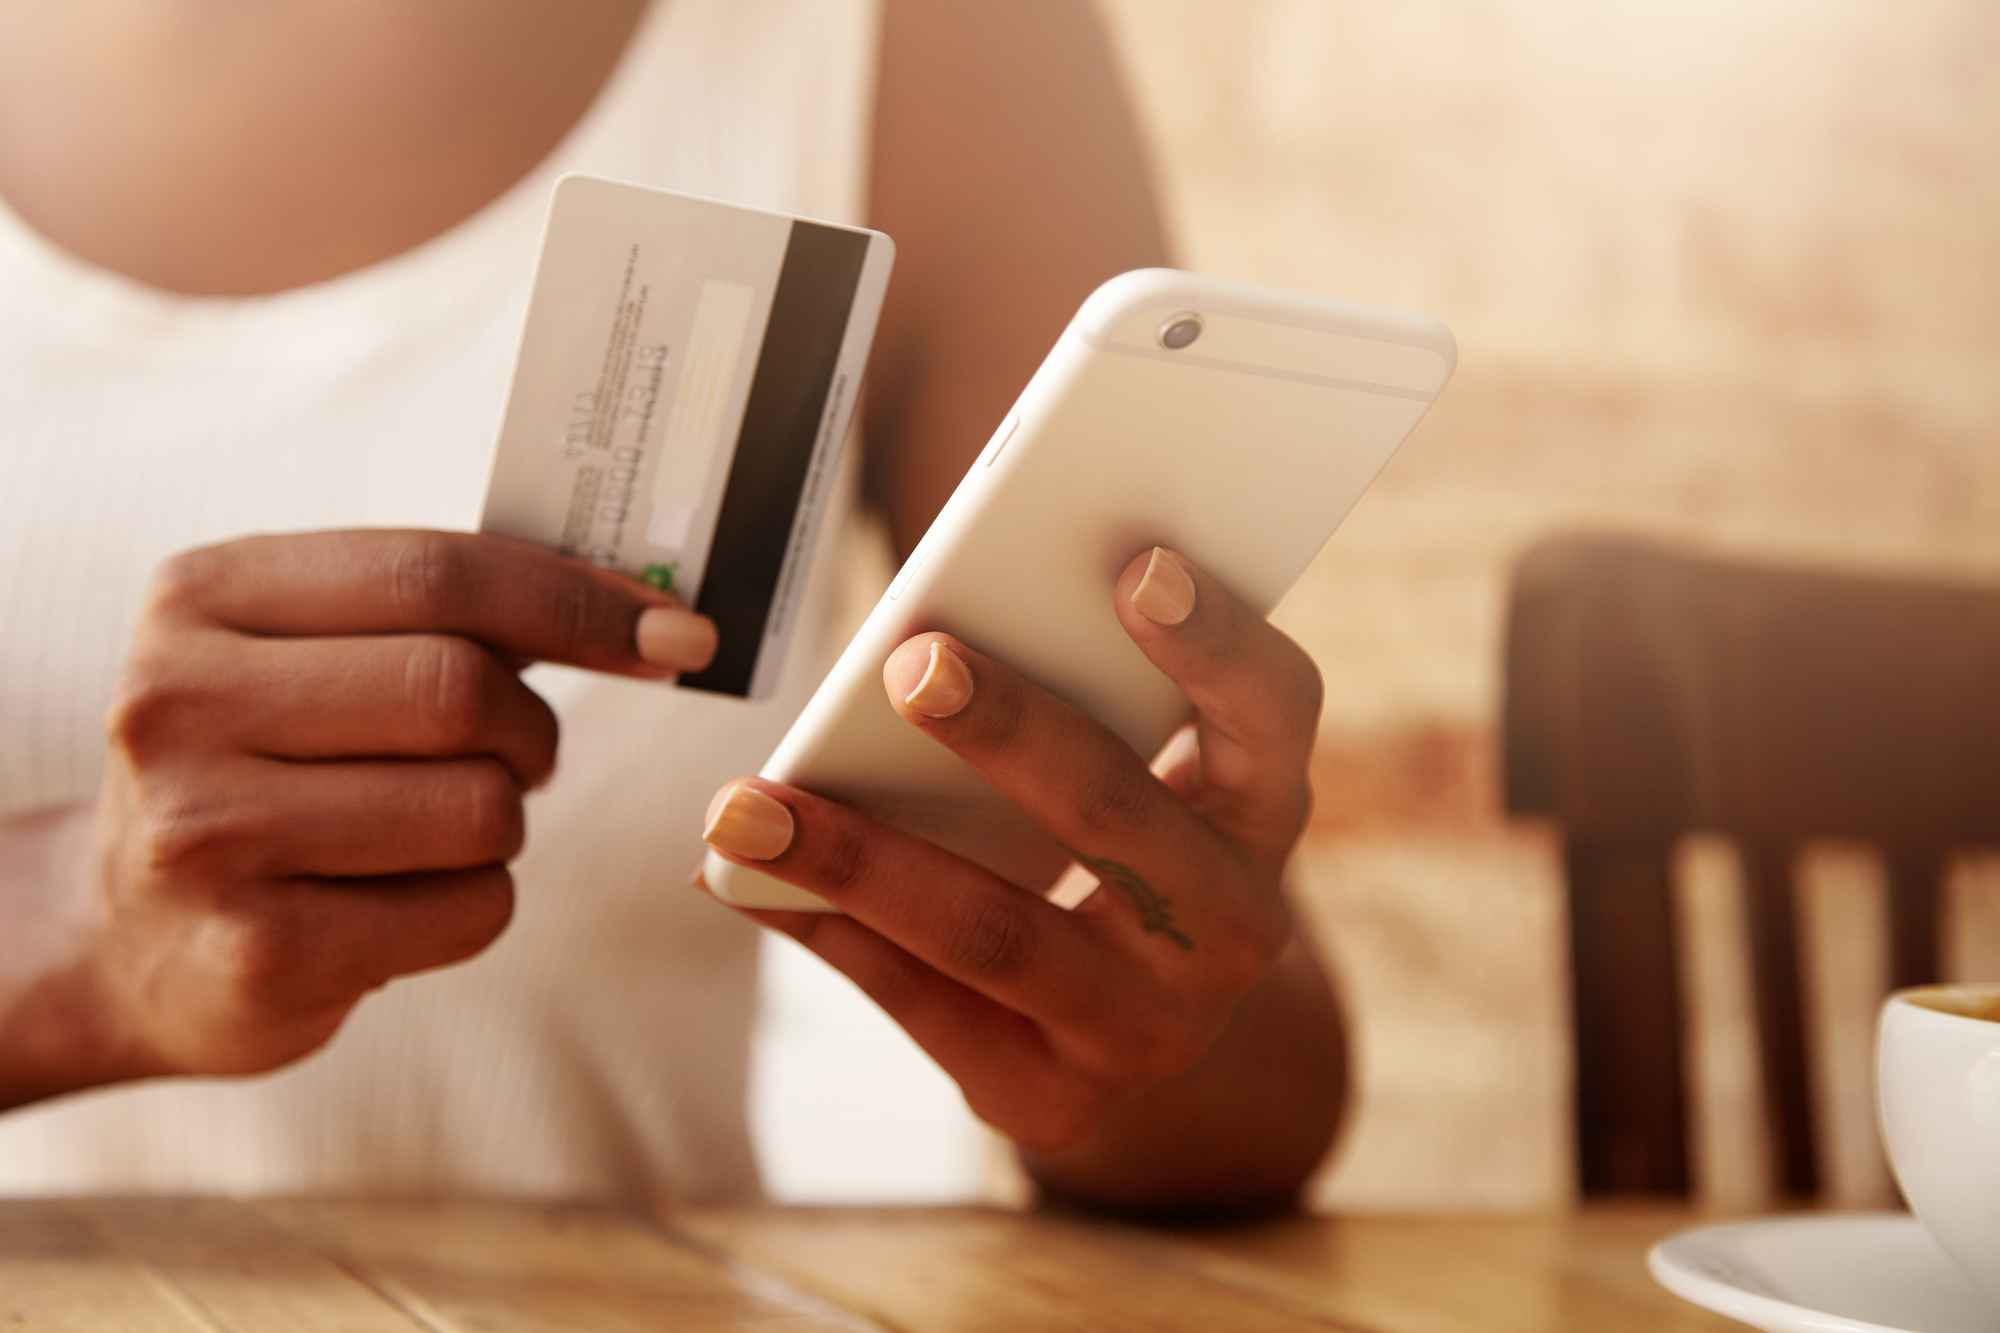 Understanding Mobile's Role in Shopping